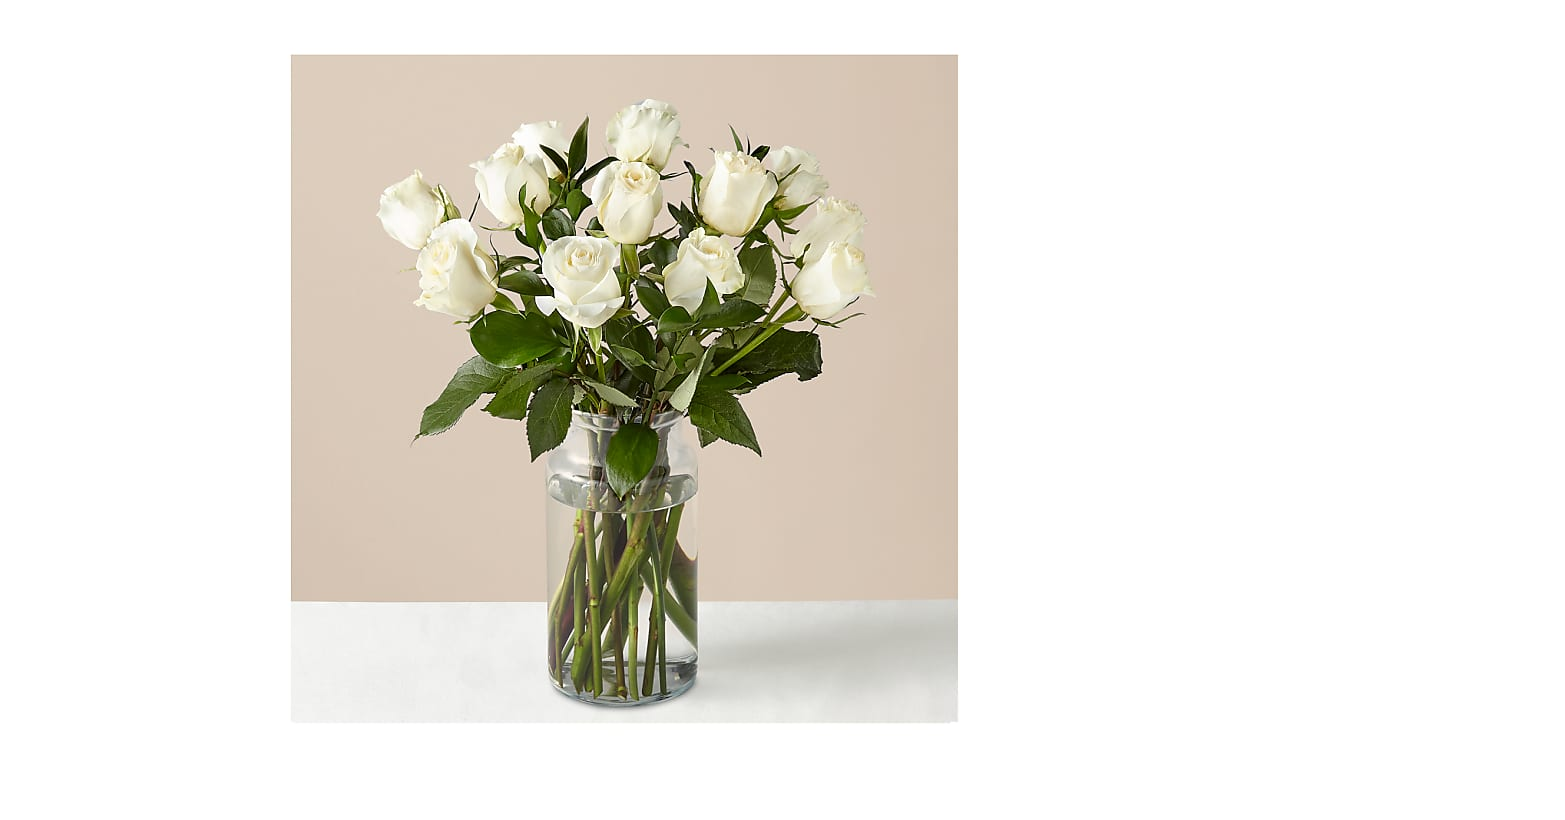 Moonlight White Rose Bouquet - Image 1 Of 3